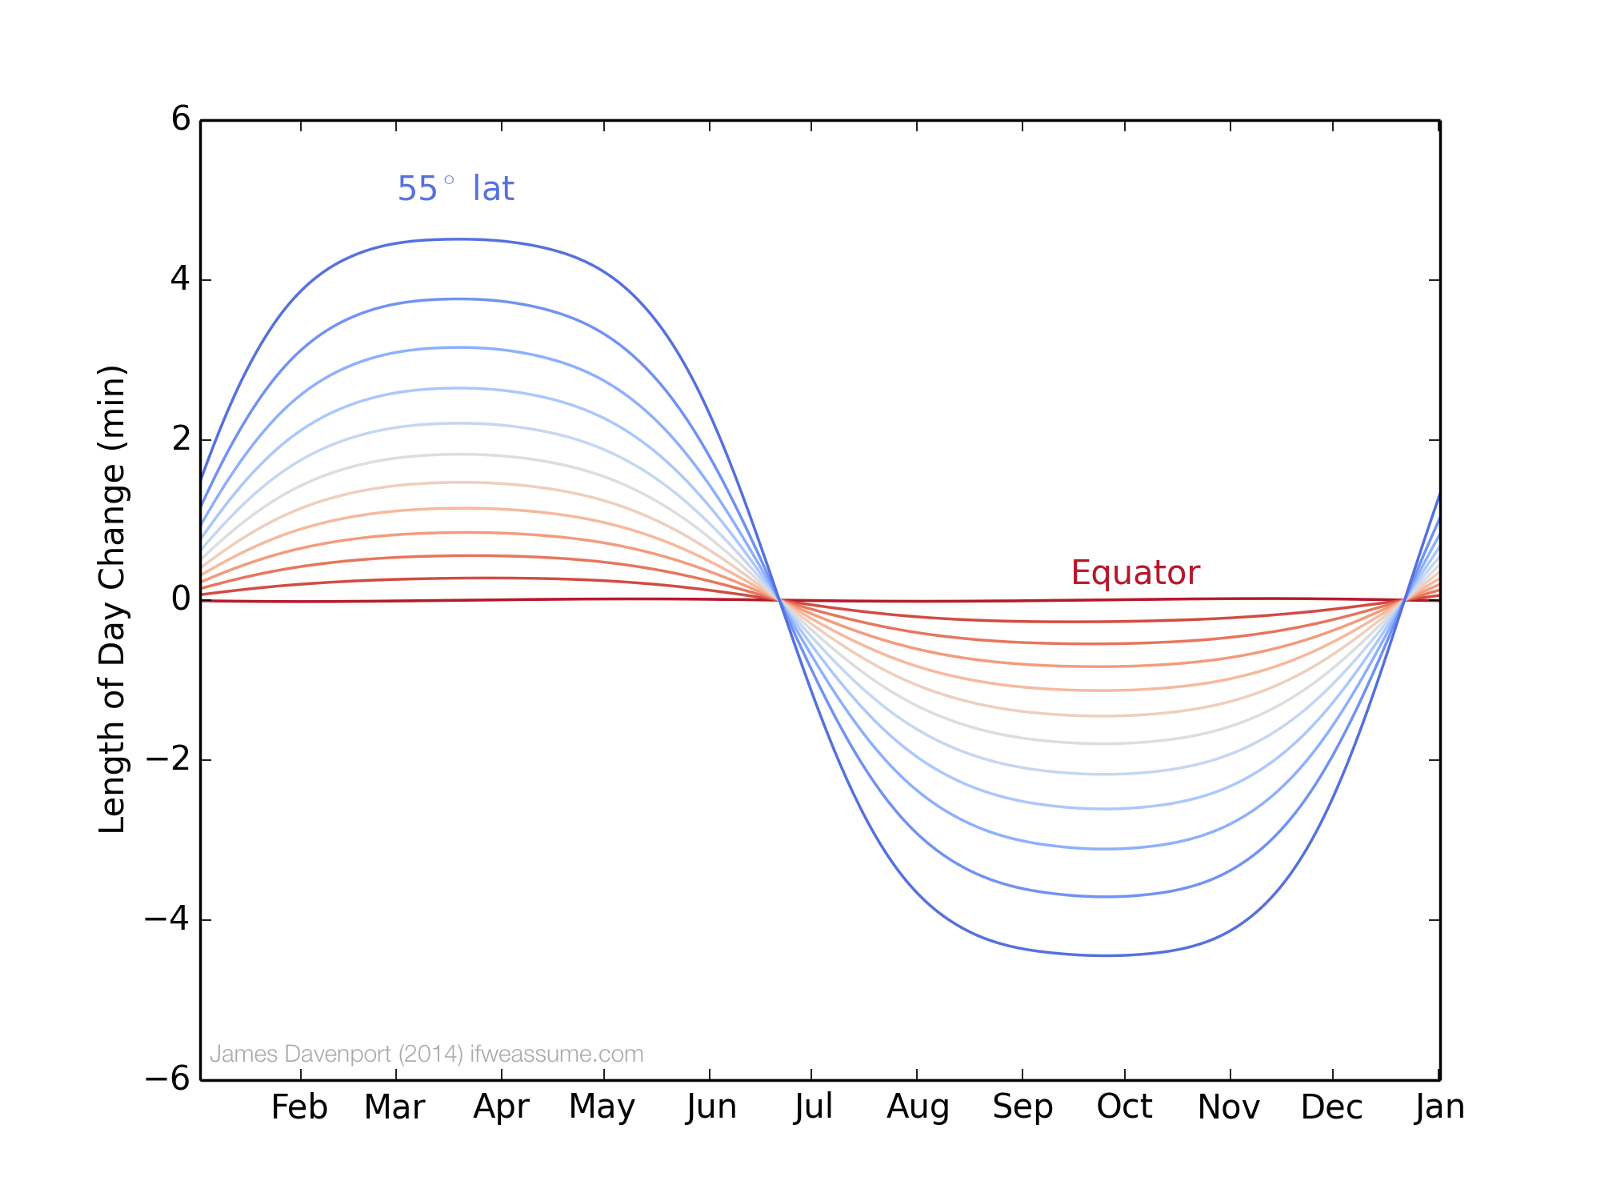 Going By The Chart We Are Entering Time Of Year With Fastest Change In Day Length Days Here Curly Shortening At About 2 Minutes